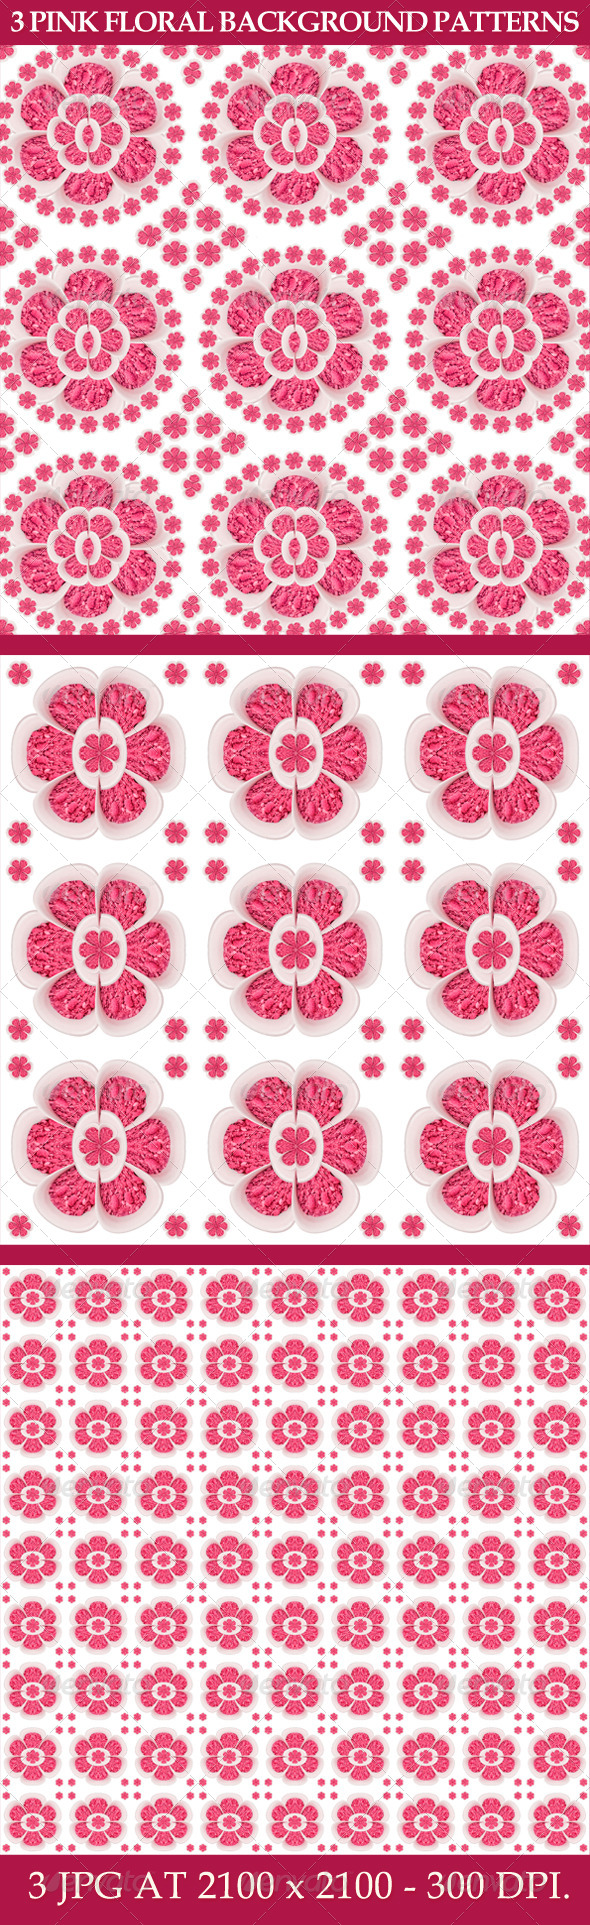 GraphicRiver 3 Pink Floral Background Patterns 6032946